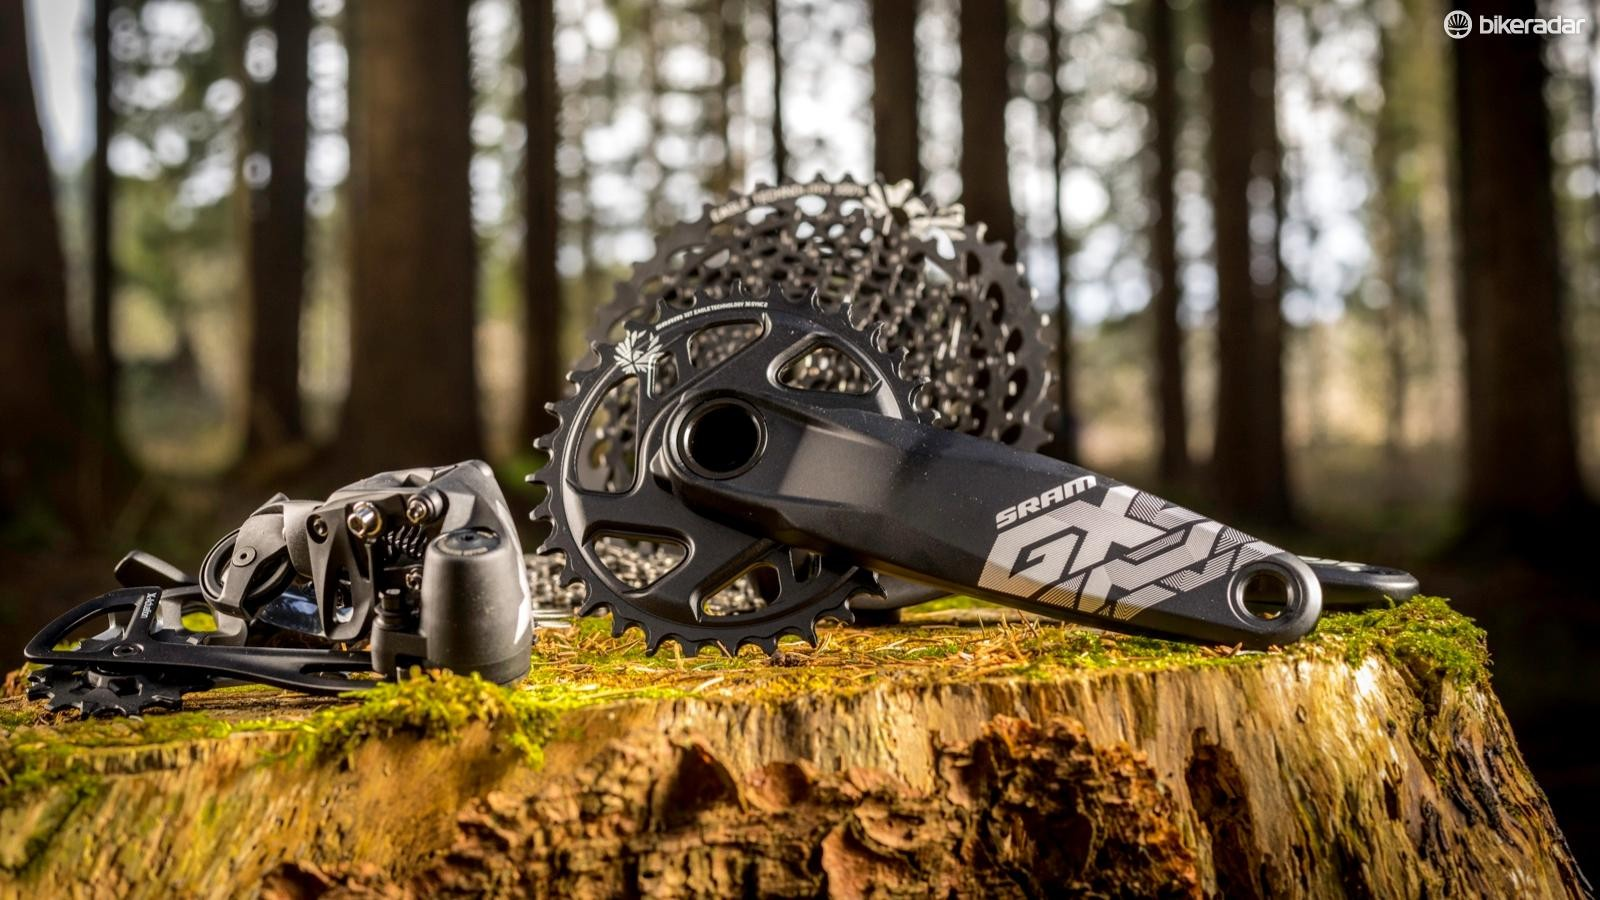 SRAM's GX Eagle drivetrain has 12-speed and a lot of performance for the money